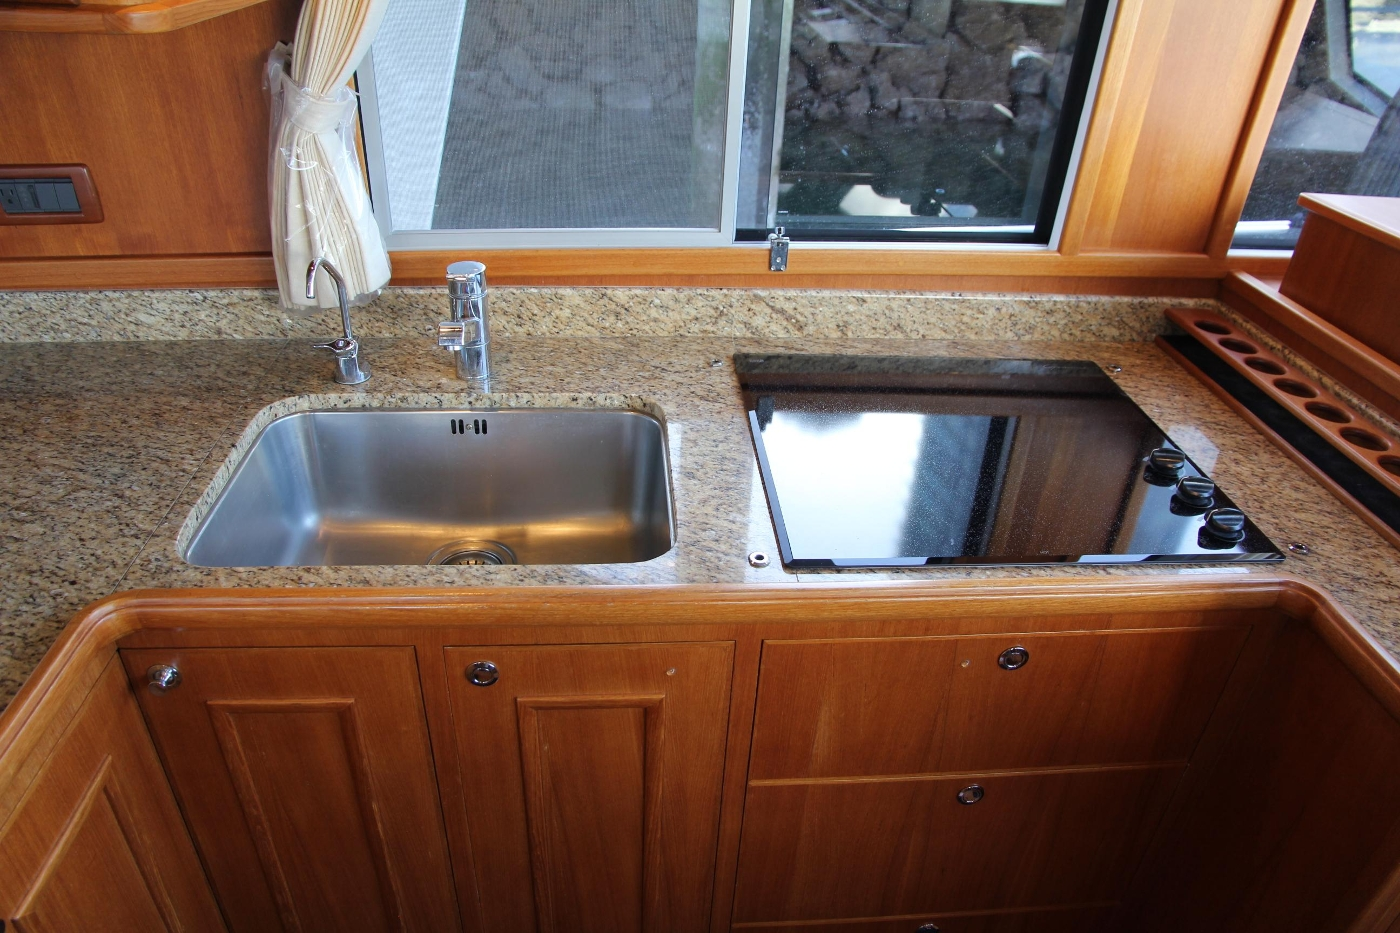 2009 Grand Banks 47 Europa, Stove and Sink